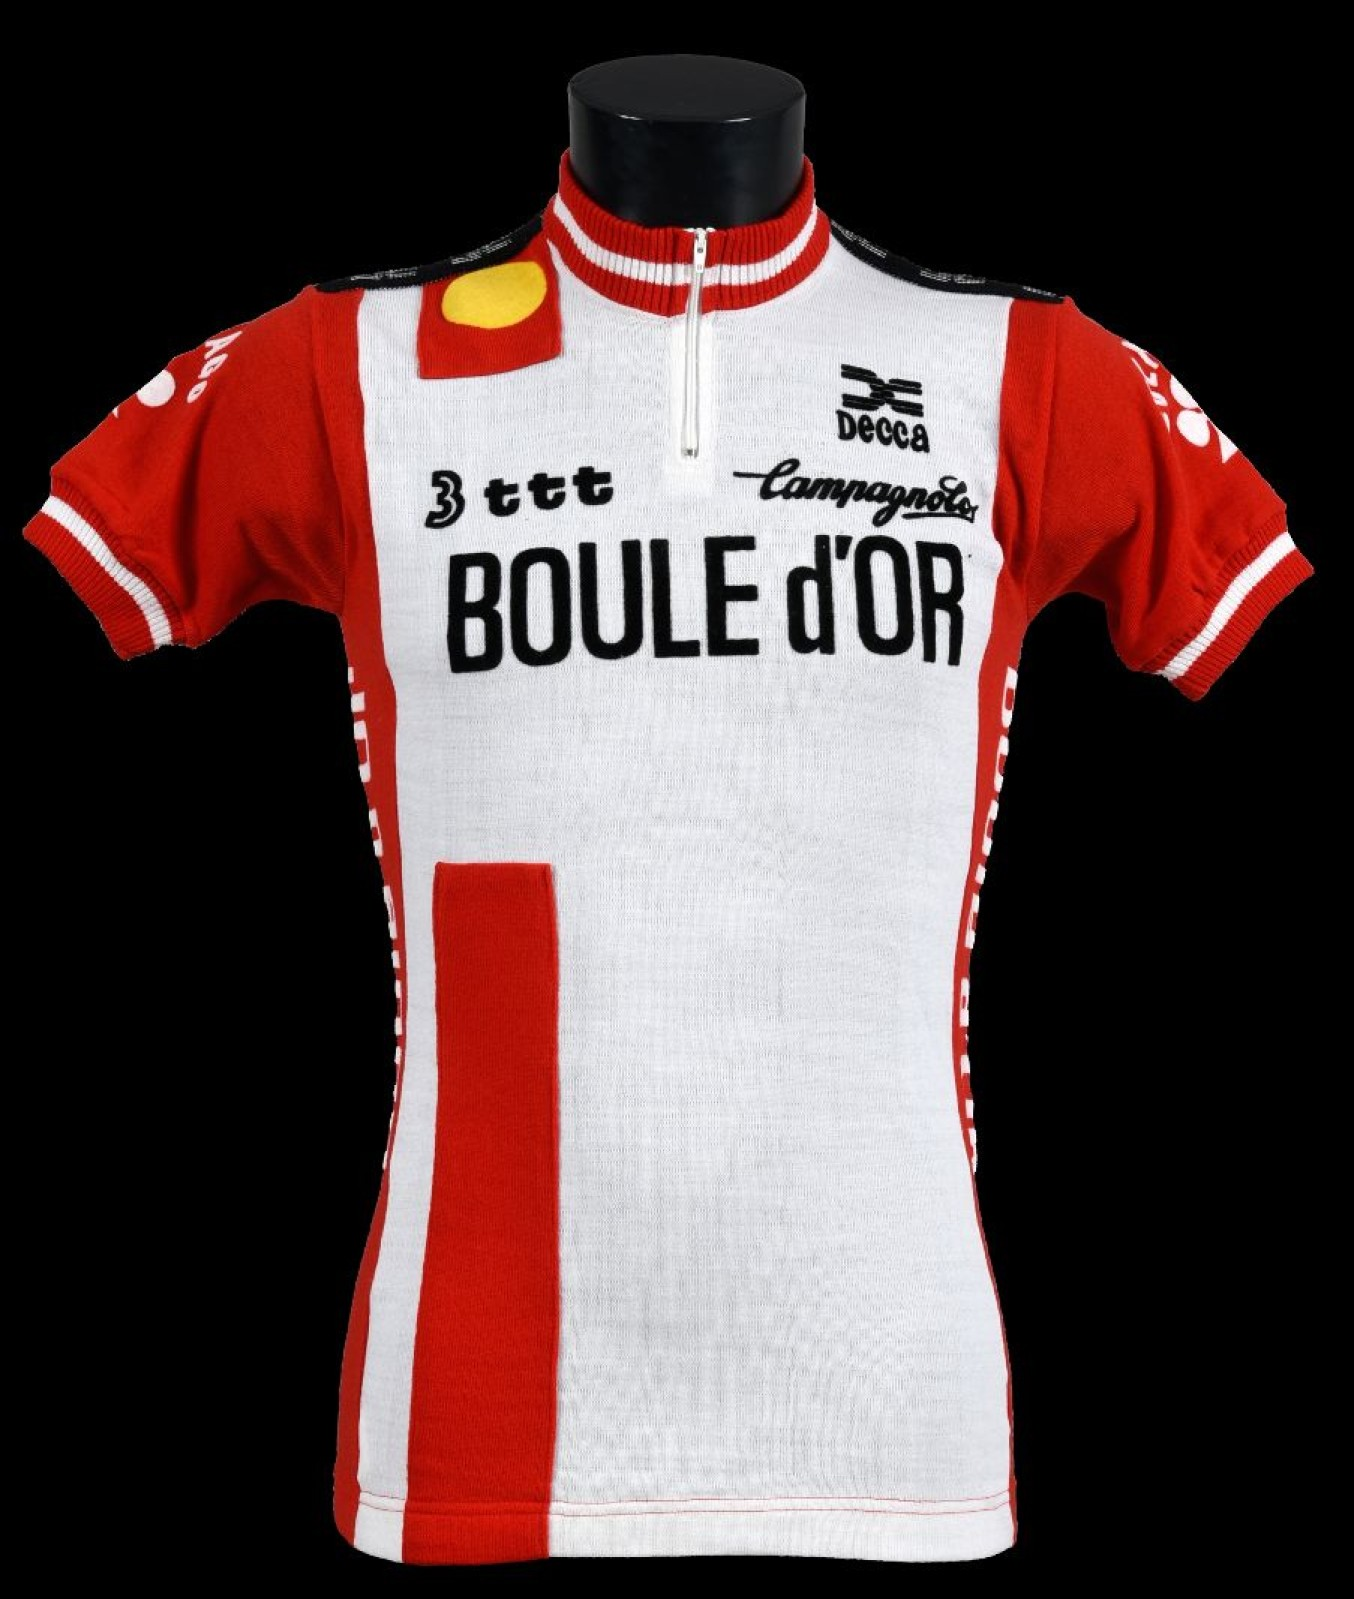 The Belgian cigarette brand Boule d'Or sponsored a cycling team in the early 1980s